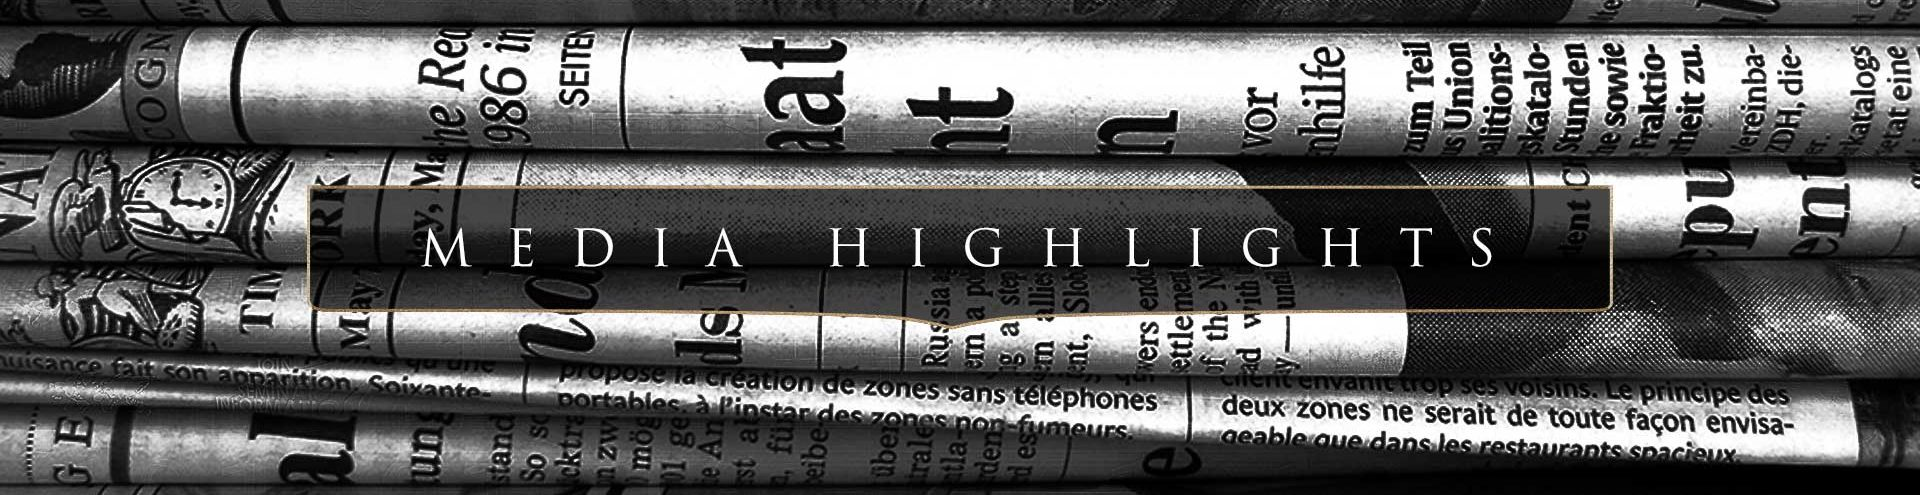 Media-Highlits-English